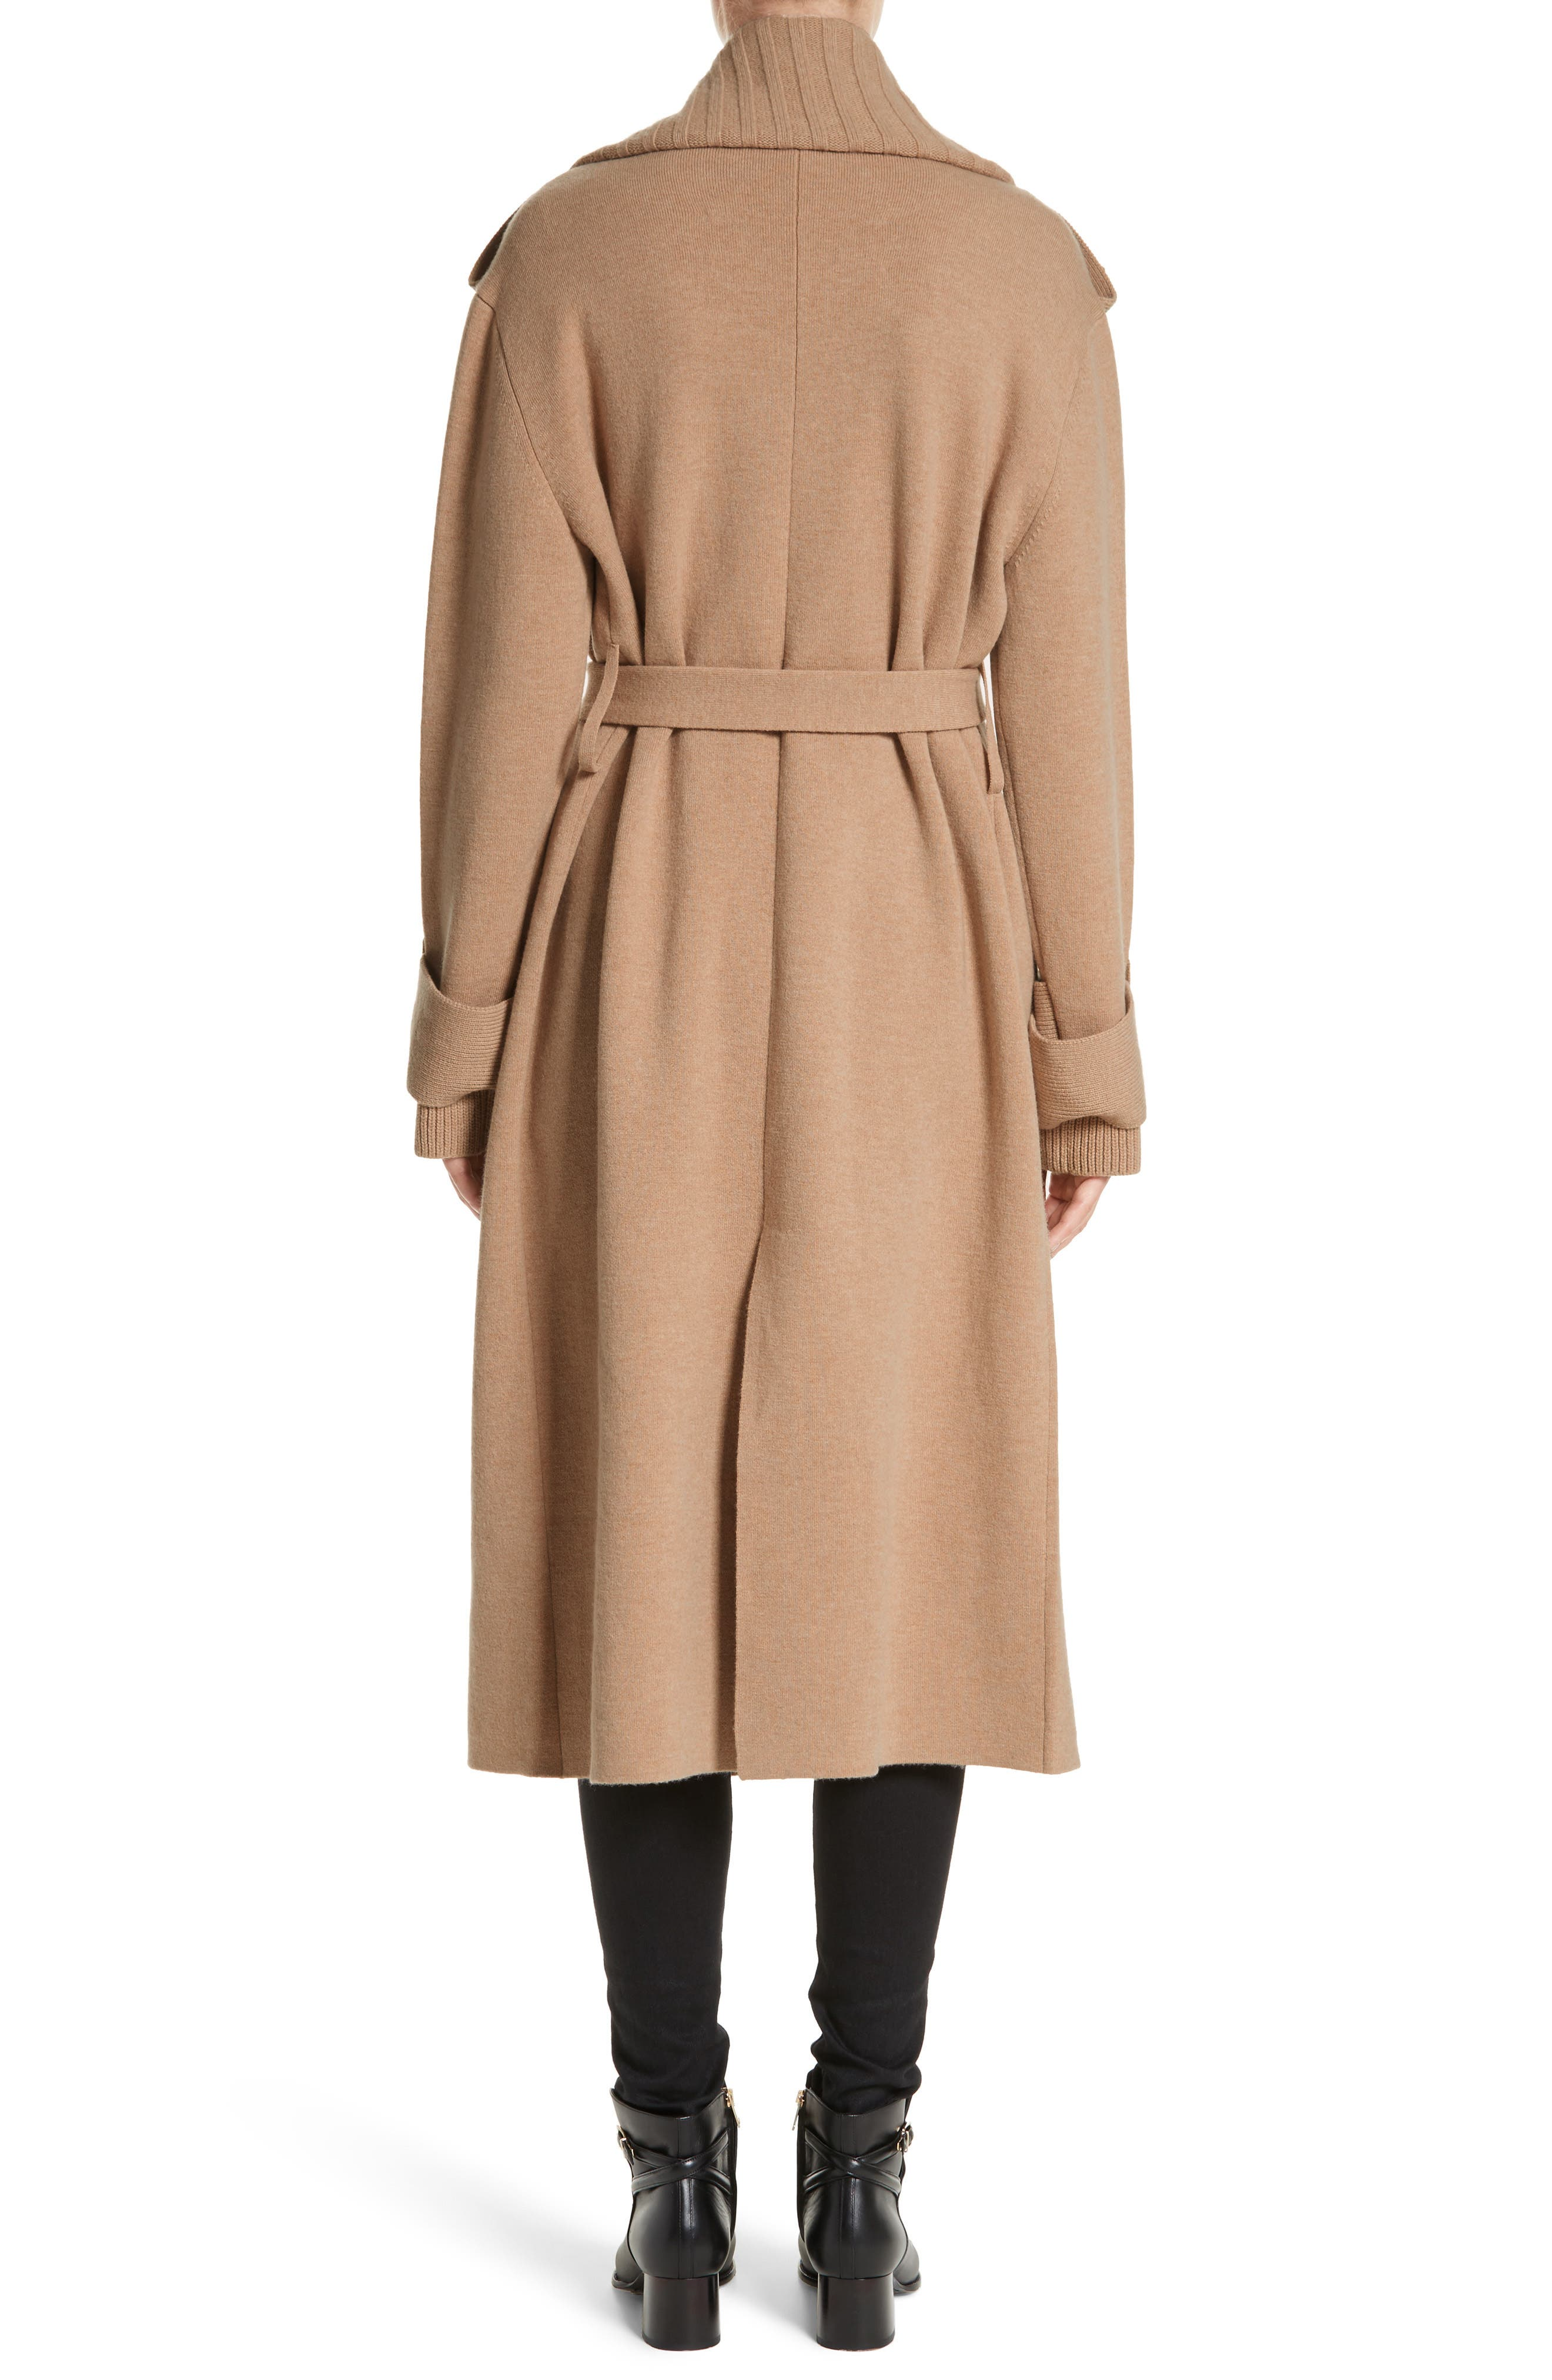 BURBERRY, Piota Wool Blend Knit Trench Coat, Alternate thumbnail 2, color, CAMEL